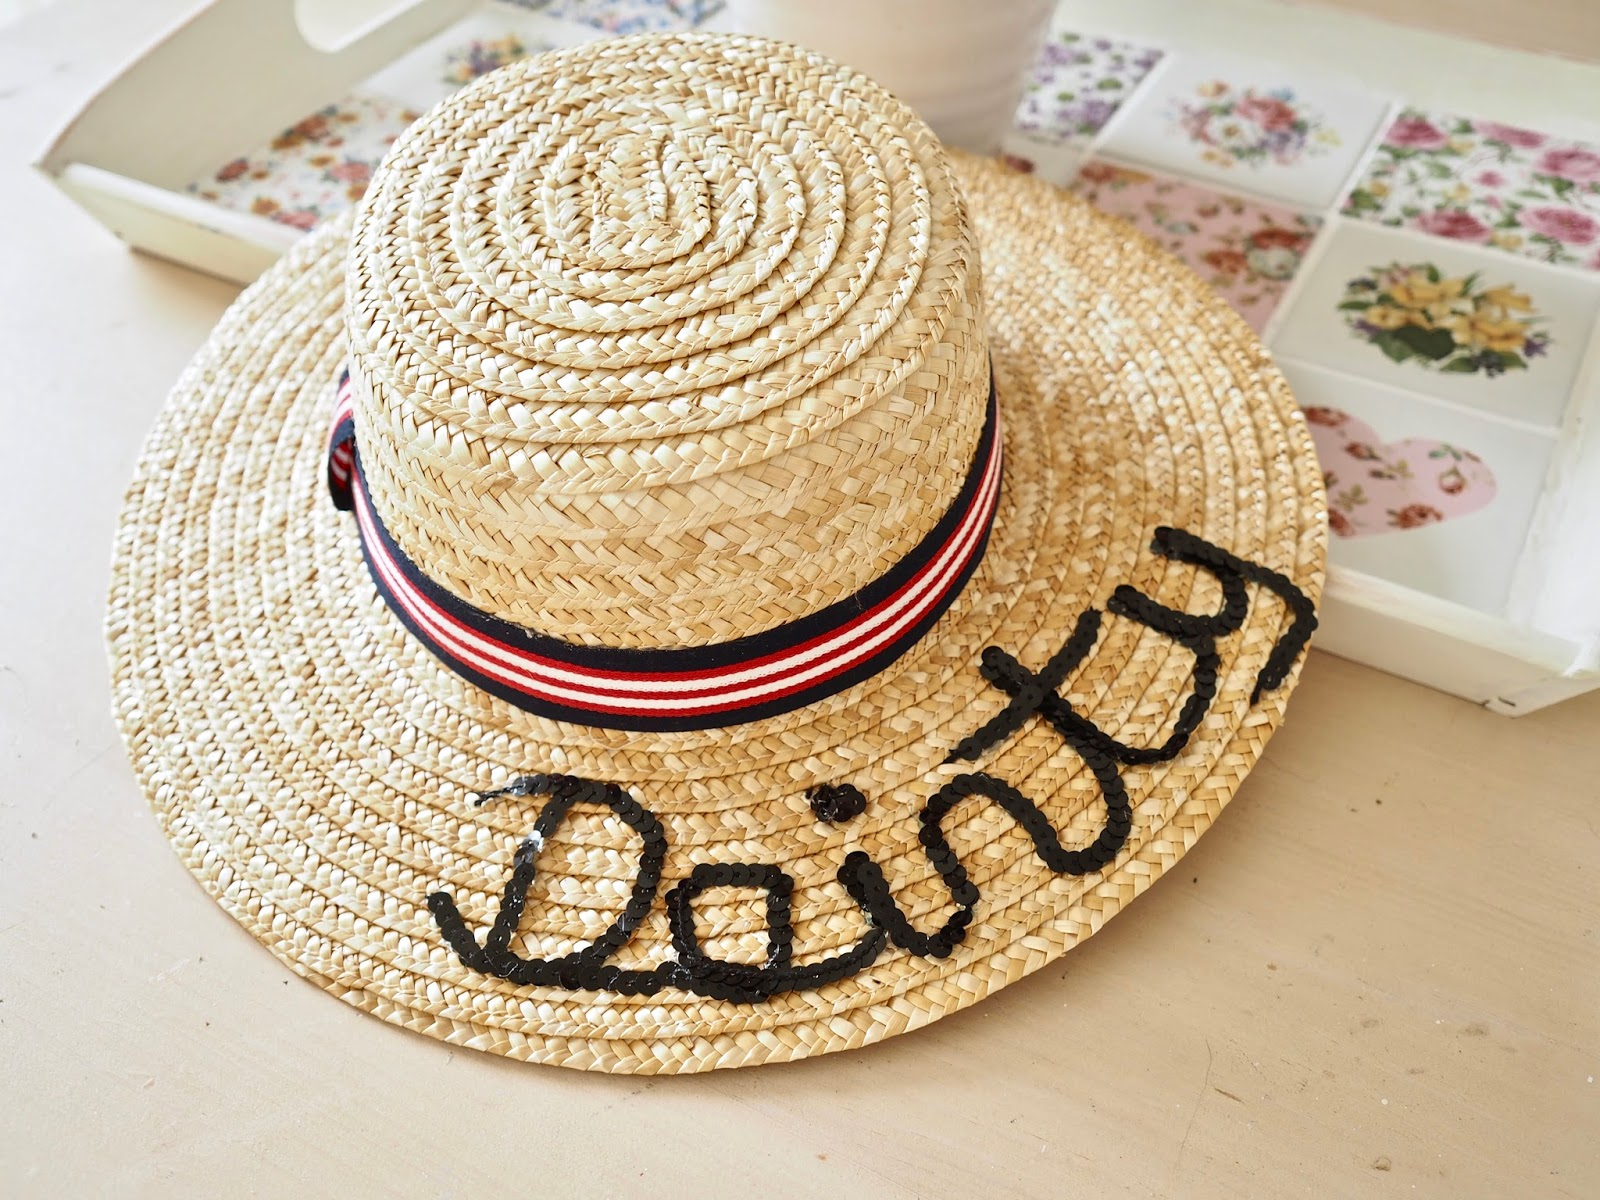 I did my straw hat first and it is a little wonky but when I did the  lettering on my straw bag it was much better. So a2f724223e37